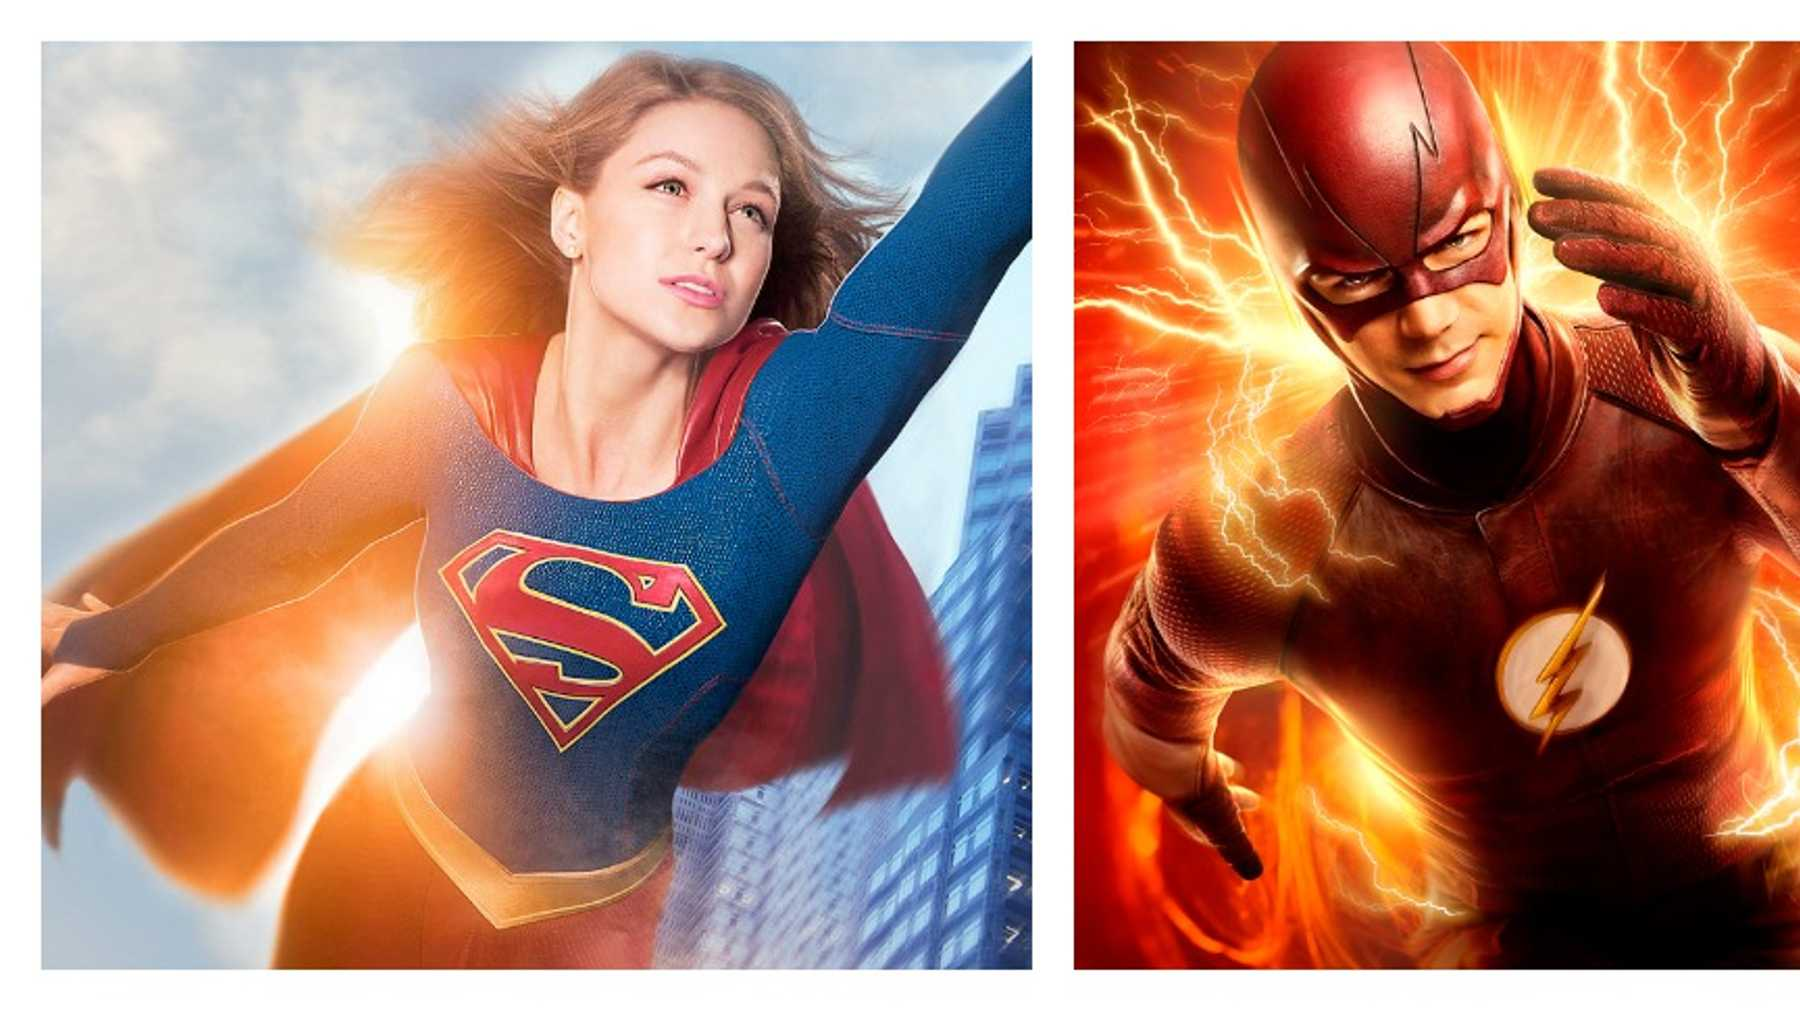 Supergirl meets The Flash in March   Movies   Empire